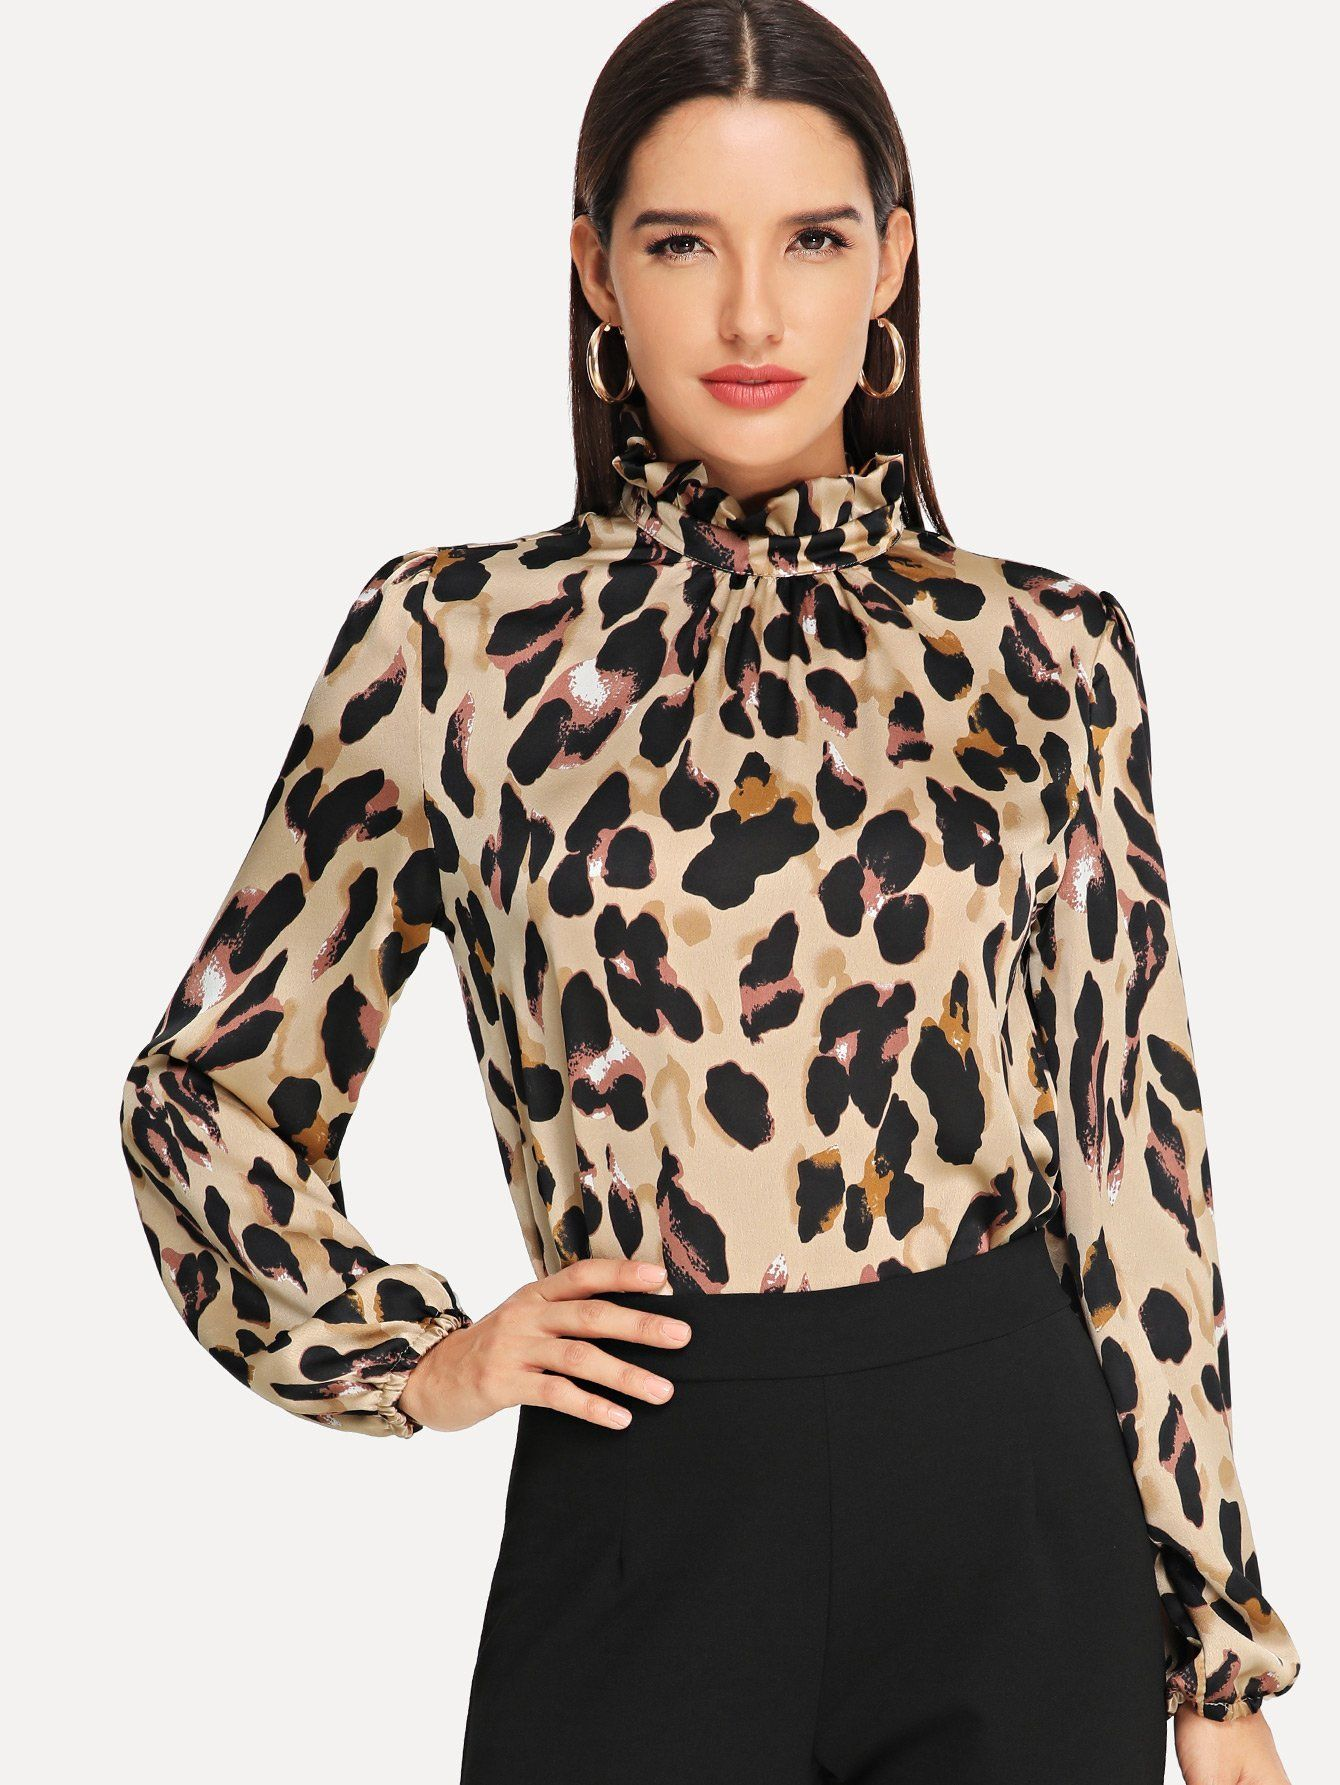 a87fdcd5059a8a Women's Frilled Collar Keyhole Back Leopard Top Multi Sizes FREE ...